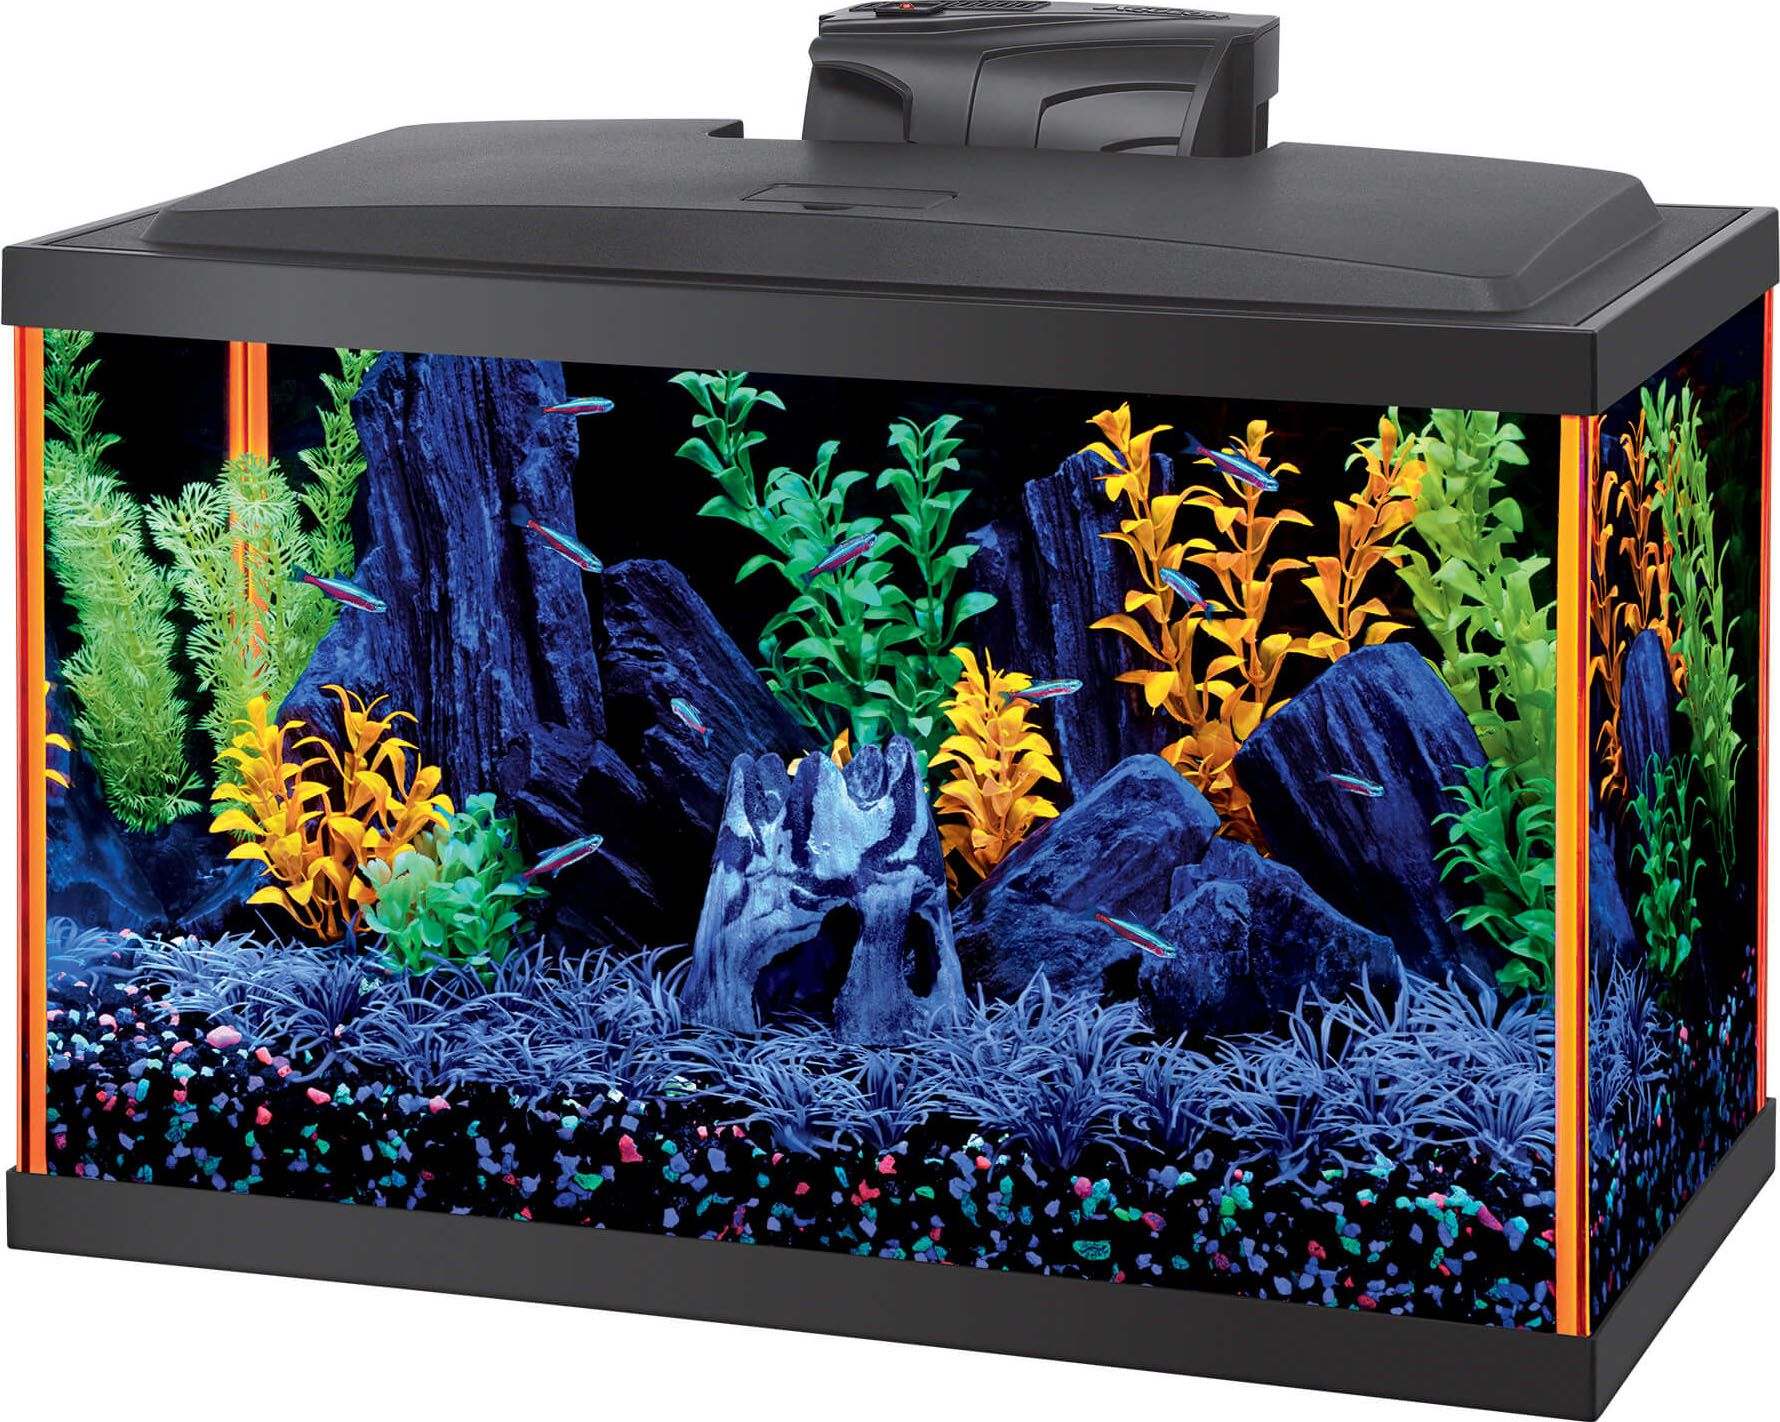 Fish Aqueon Neoglow Aquarium Kit Rectangle By Aqueon 10 Gallon In 2020 Aquarium Kit Aquarium Decorations Glass Aquarium